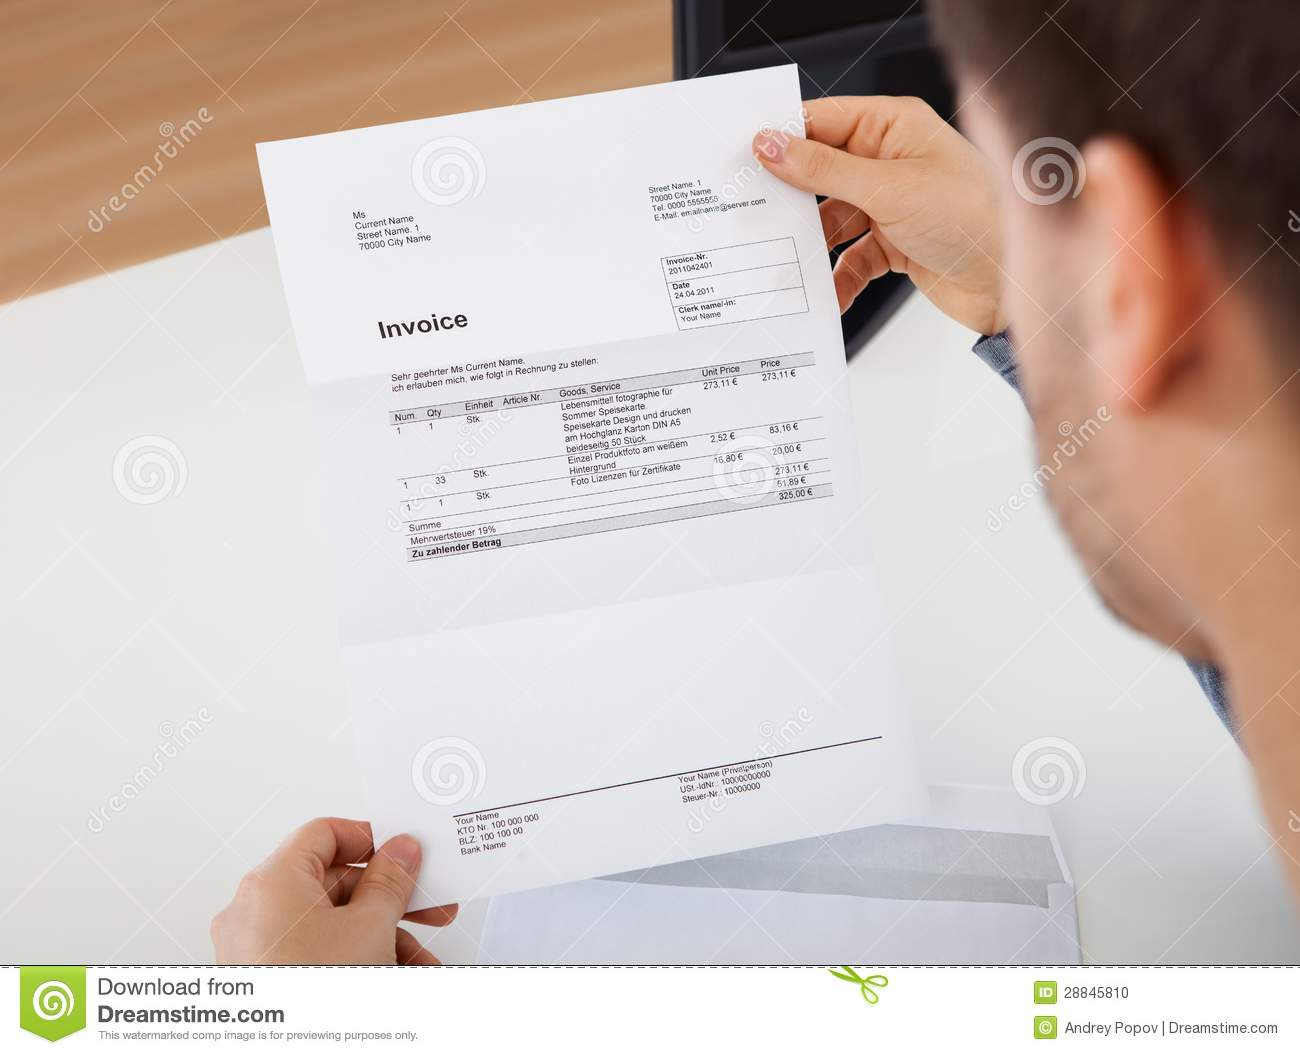 Proforma Invoice Word Format Word Business Man And Invoice Stock Photo  Image  Letter Of Receipt Template Word with Income Receipts Man Reading A Invoice Document Stock Photo Invoice Xls Pdf